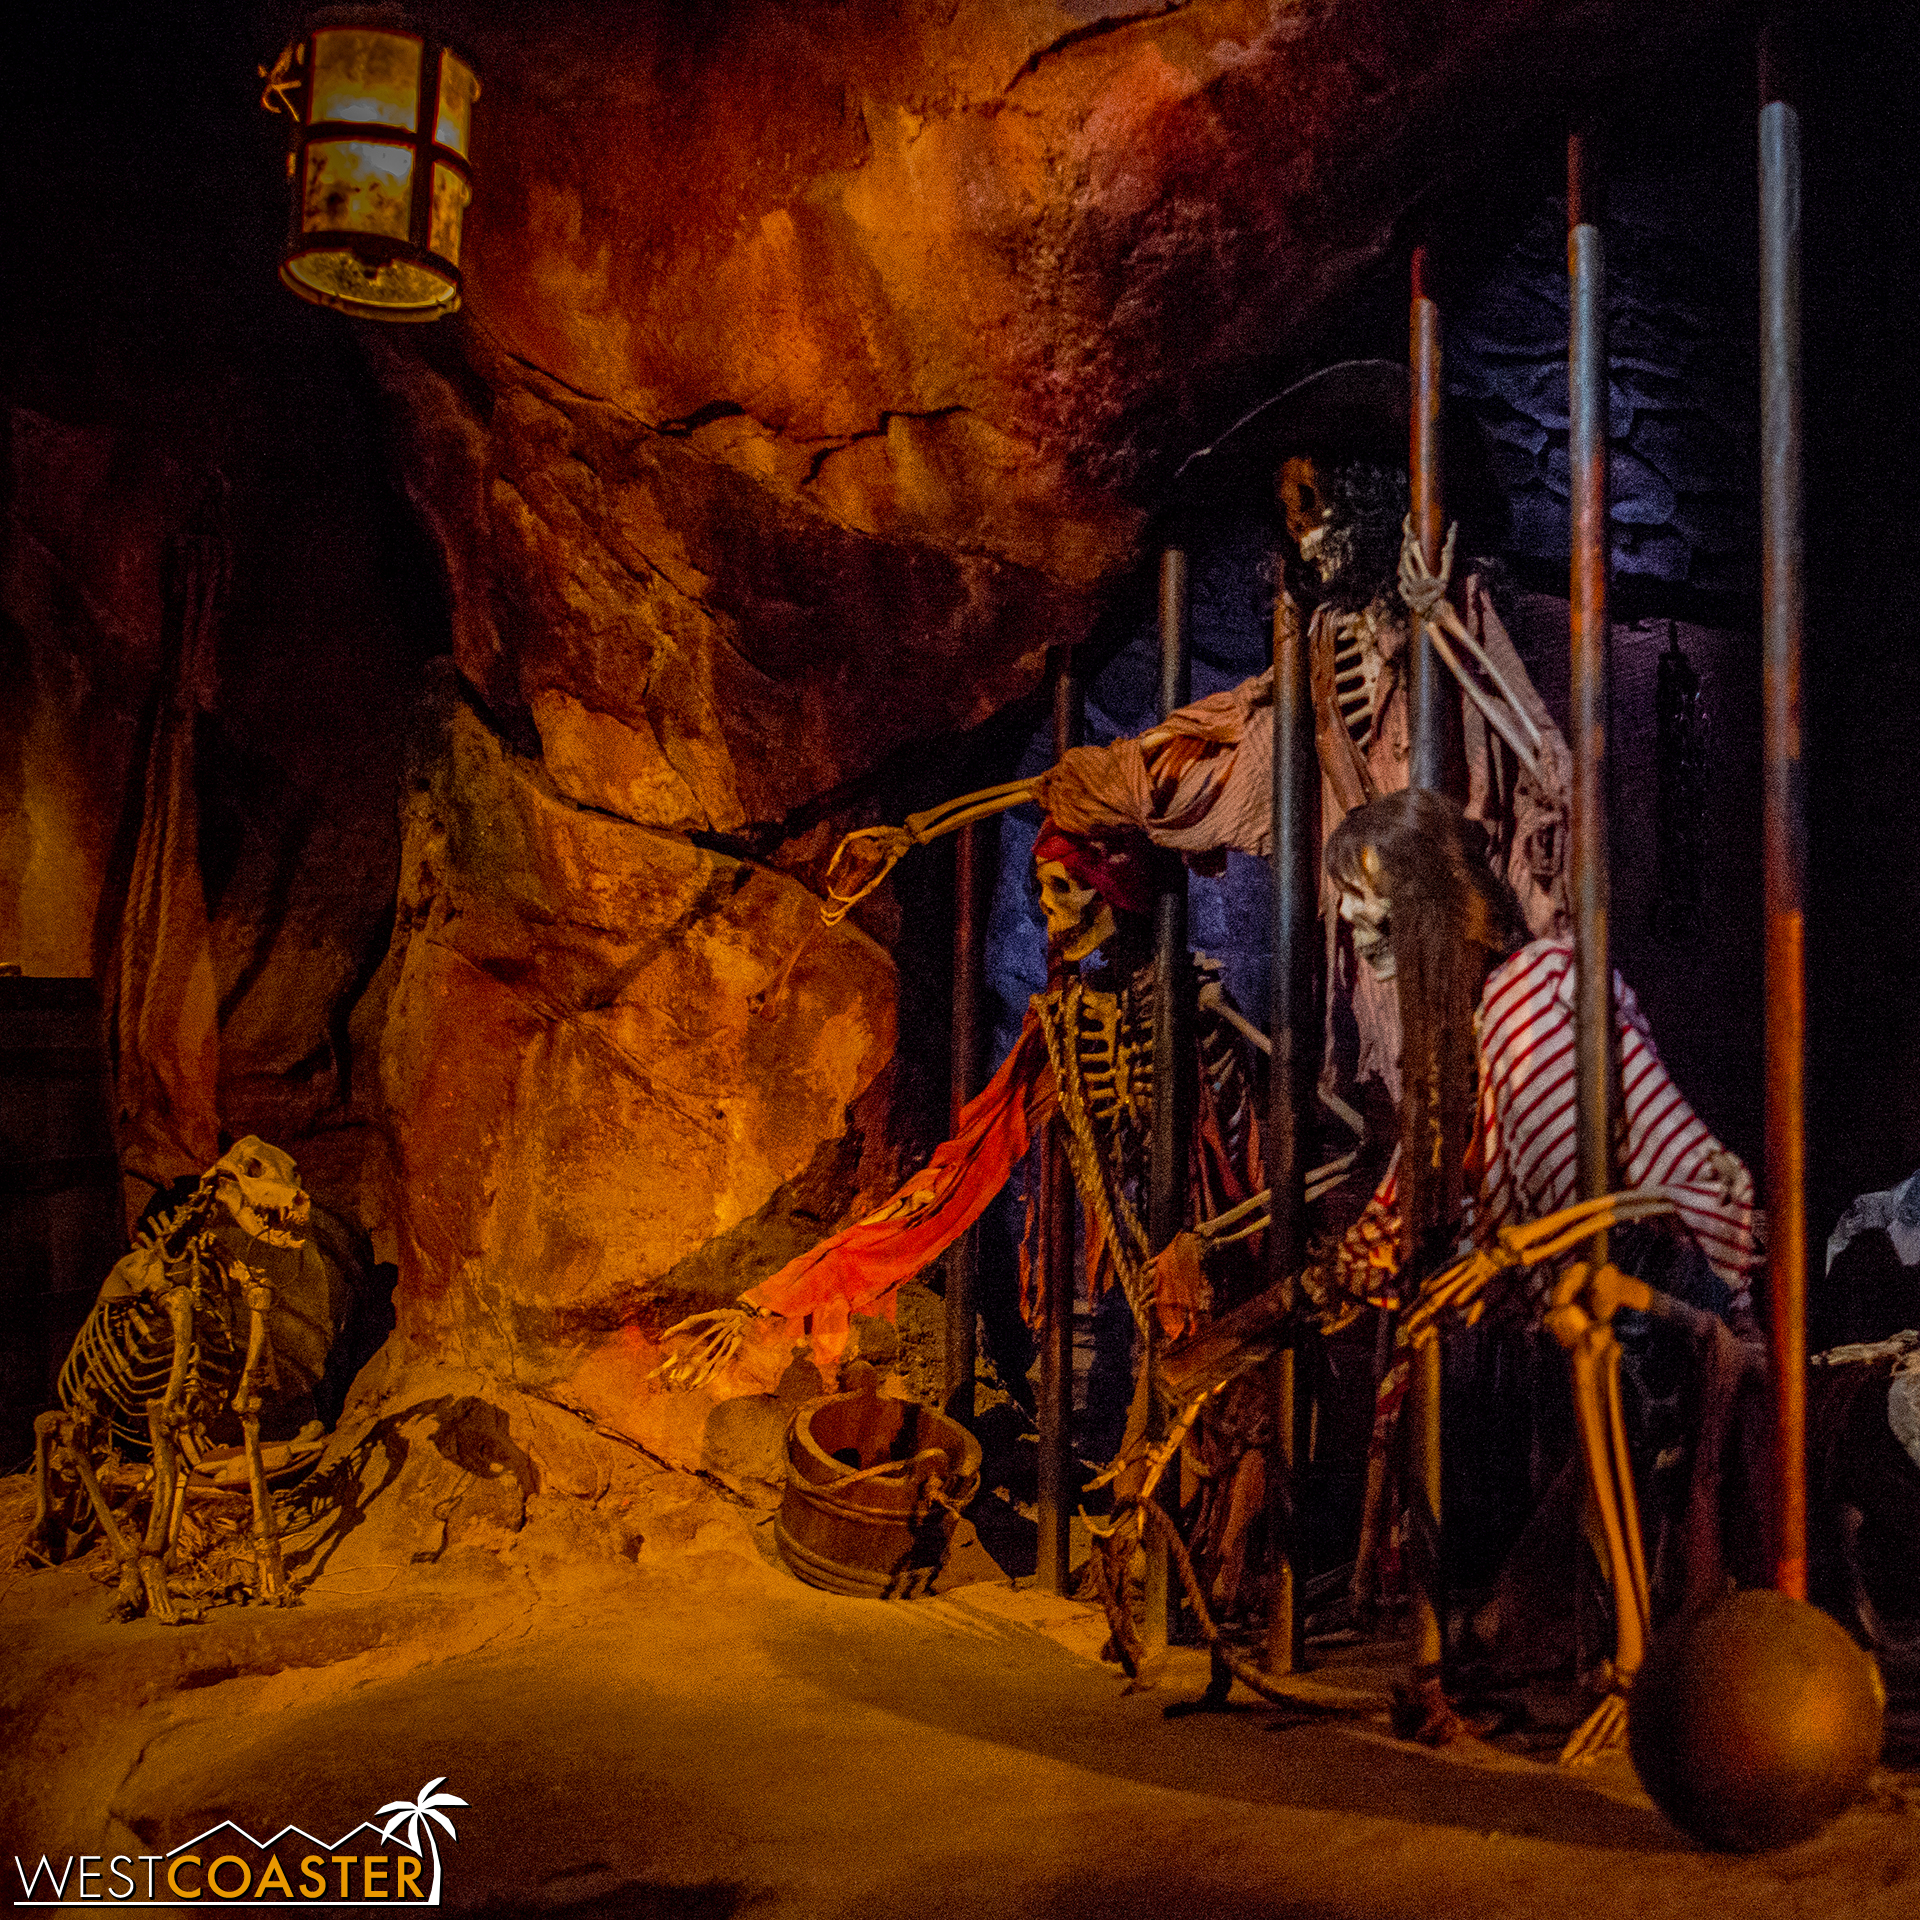 A different twist on a familiar scene inside Pirates of the Caribbean: Battle for the Sunken Treasure.